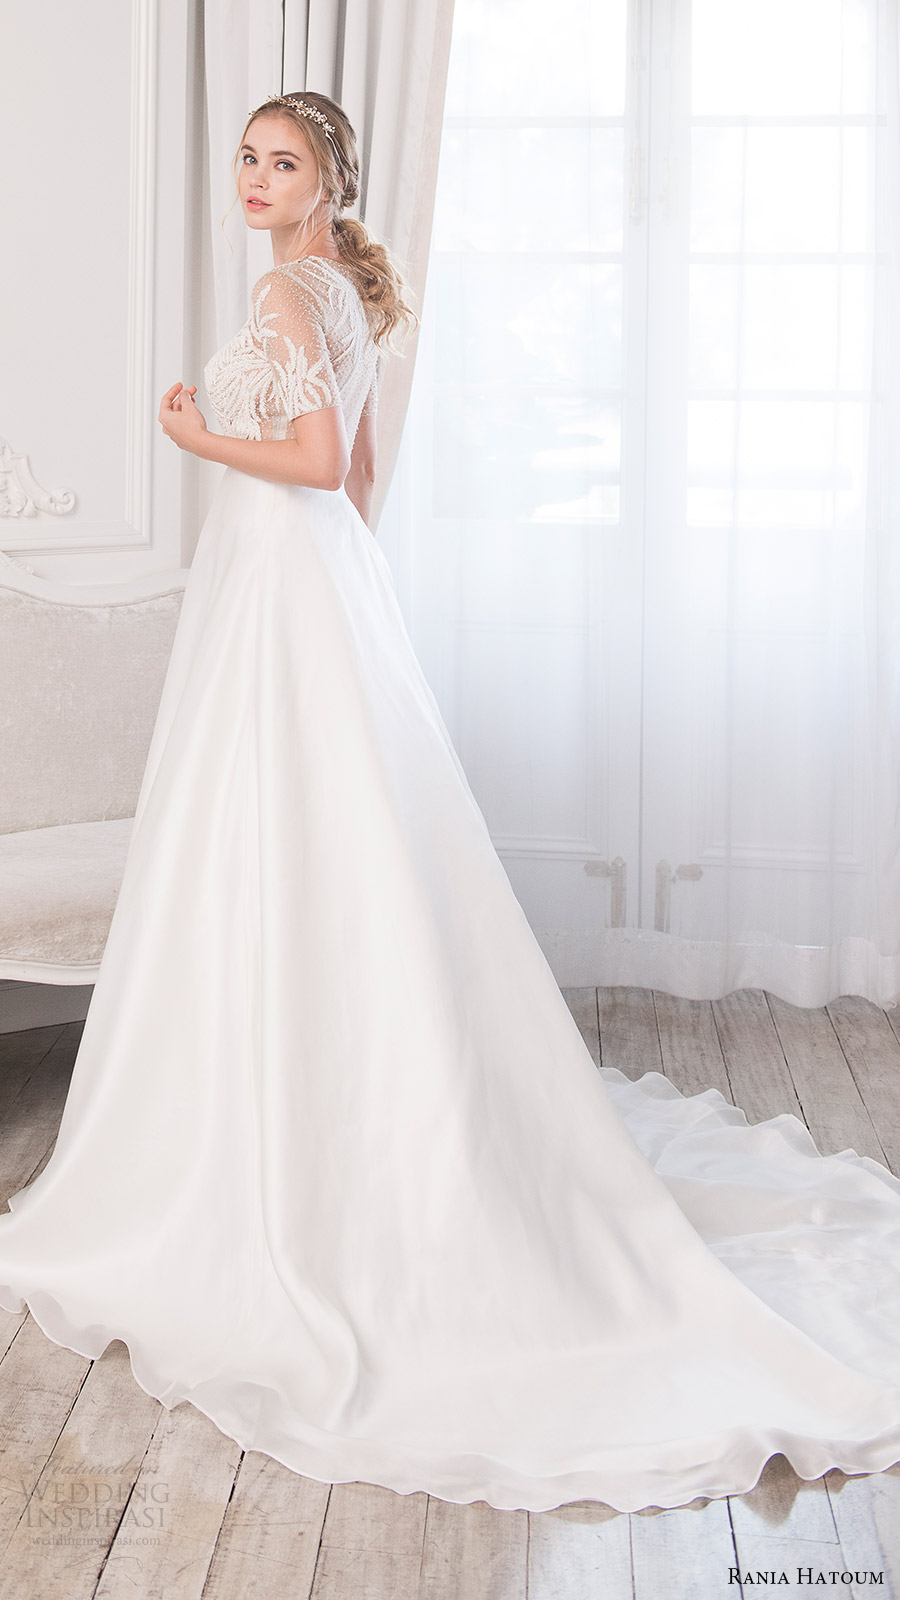 rania hatoum bridal spring 2017 illusion short sleeves jewel neck sheer bodice ball gown wedding dress (catcher) bv train